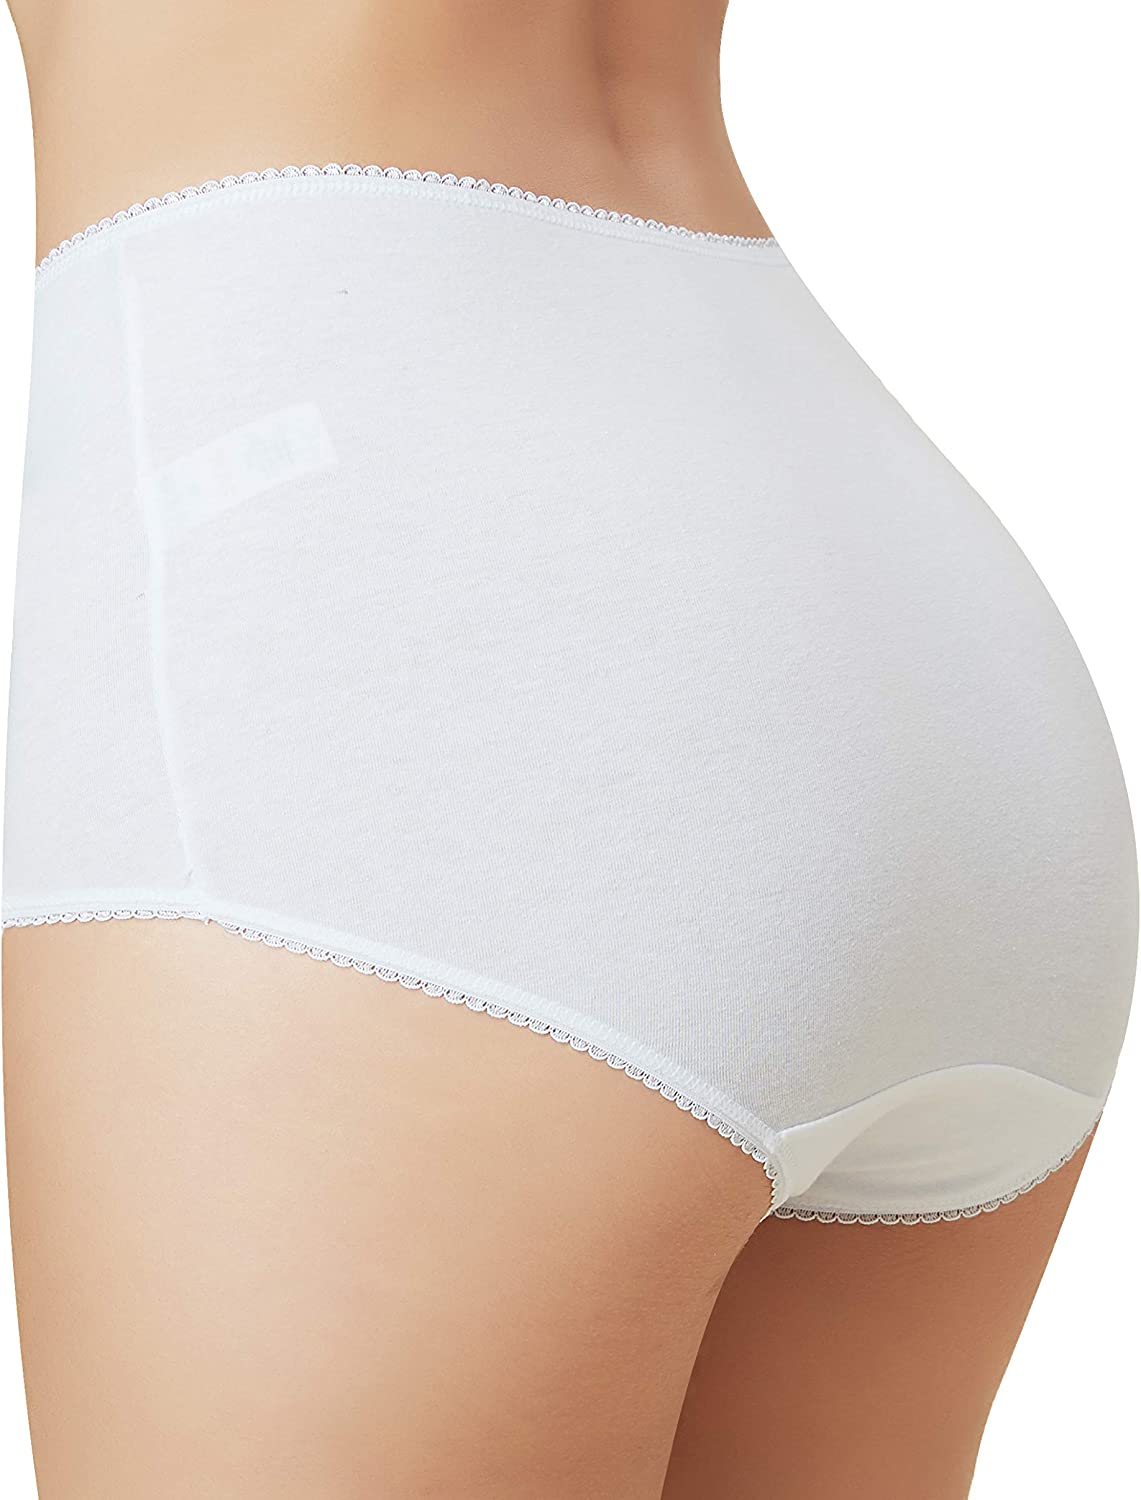 Womens Basic Cotton Rich Full Briefs Multipack of 5